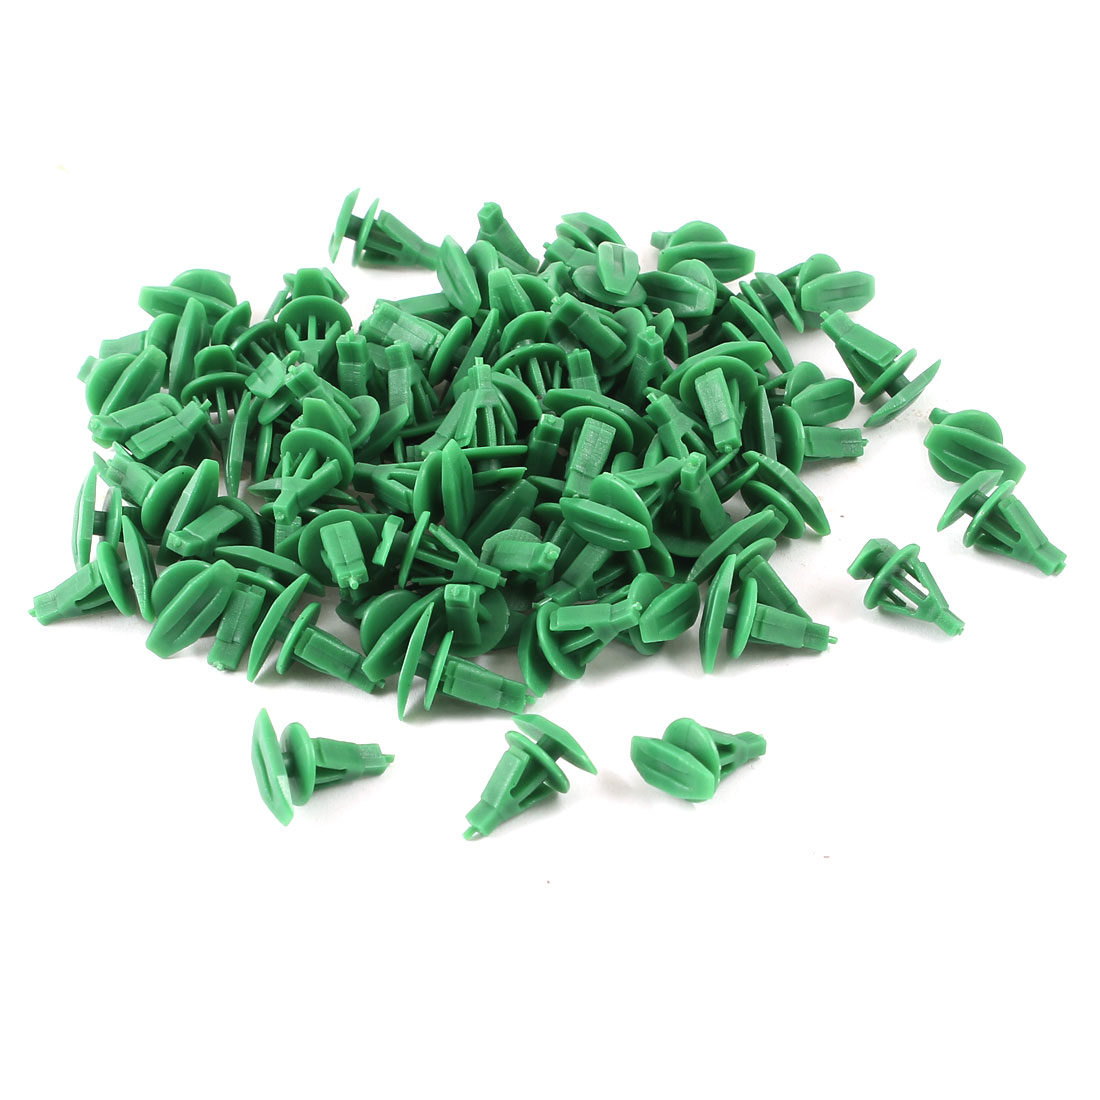 90 Pcs 6mm Hole Plastic Rivet Interior Trim Panel Car Door Retainer Clips